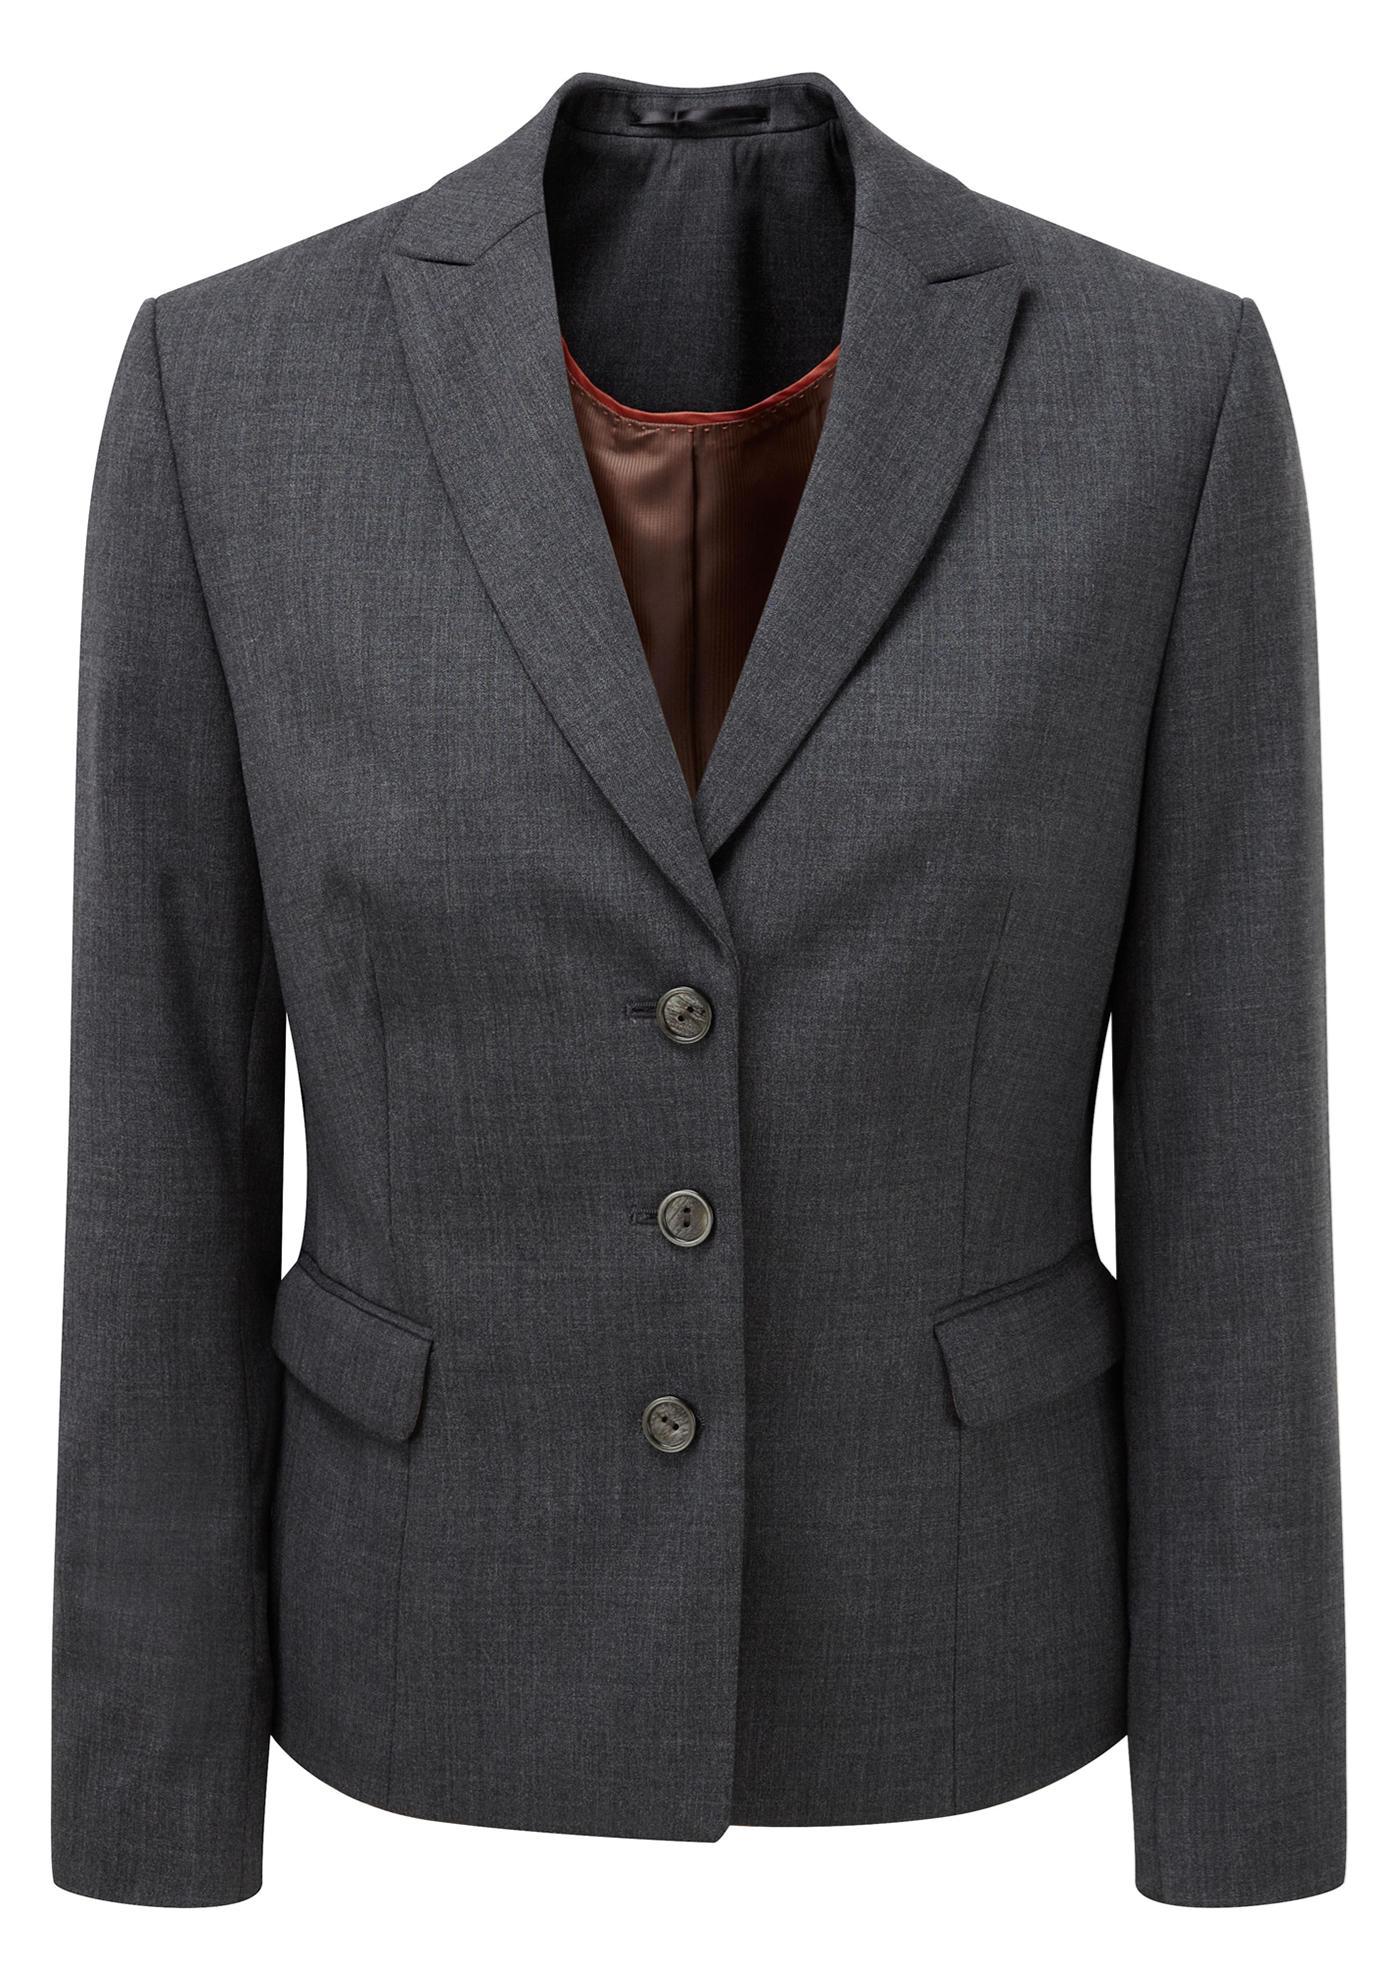 Picture of Ritz Tailored Fit Jacket - Mid Grey